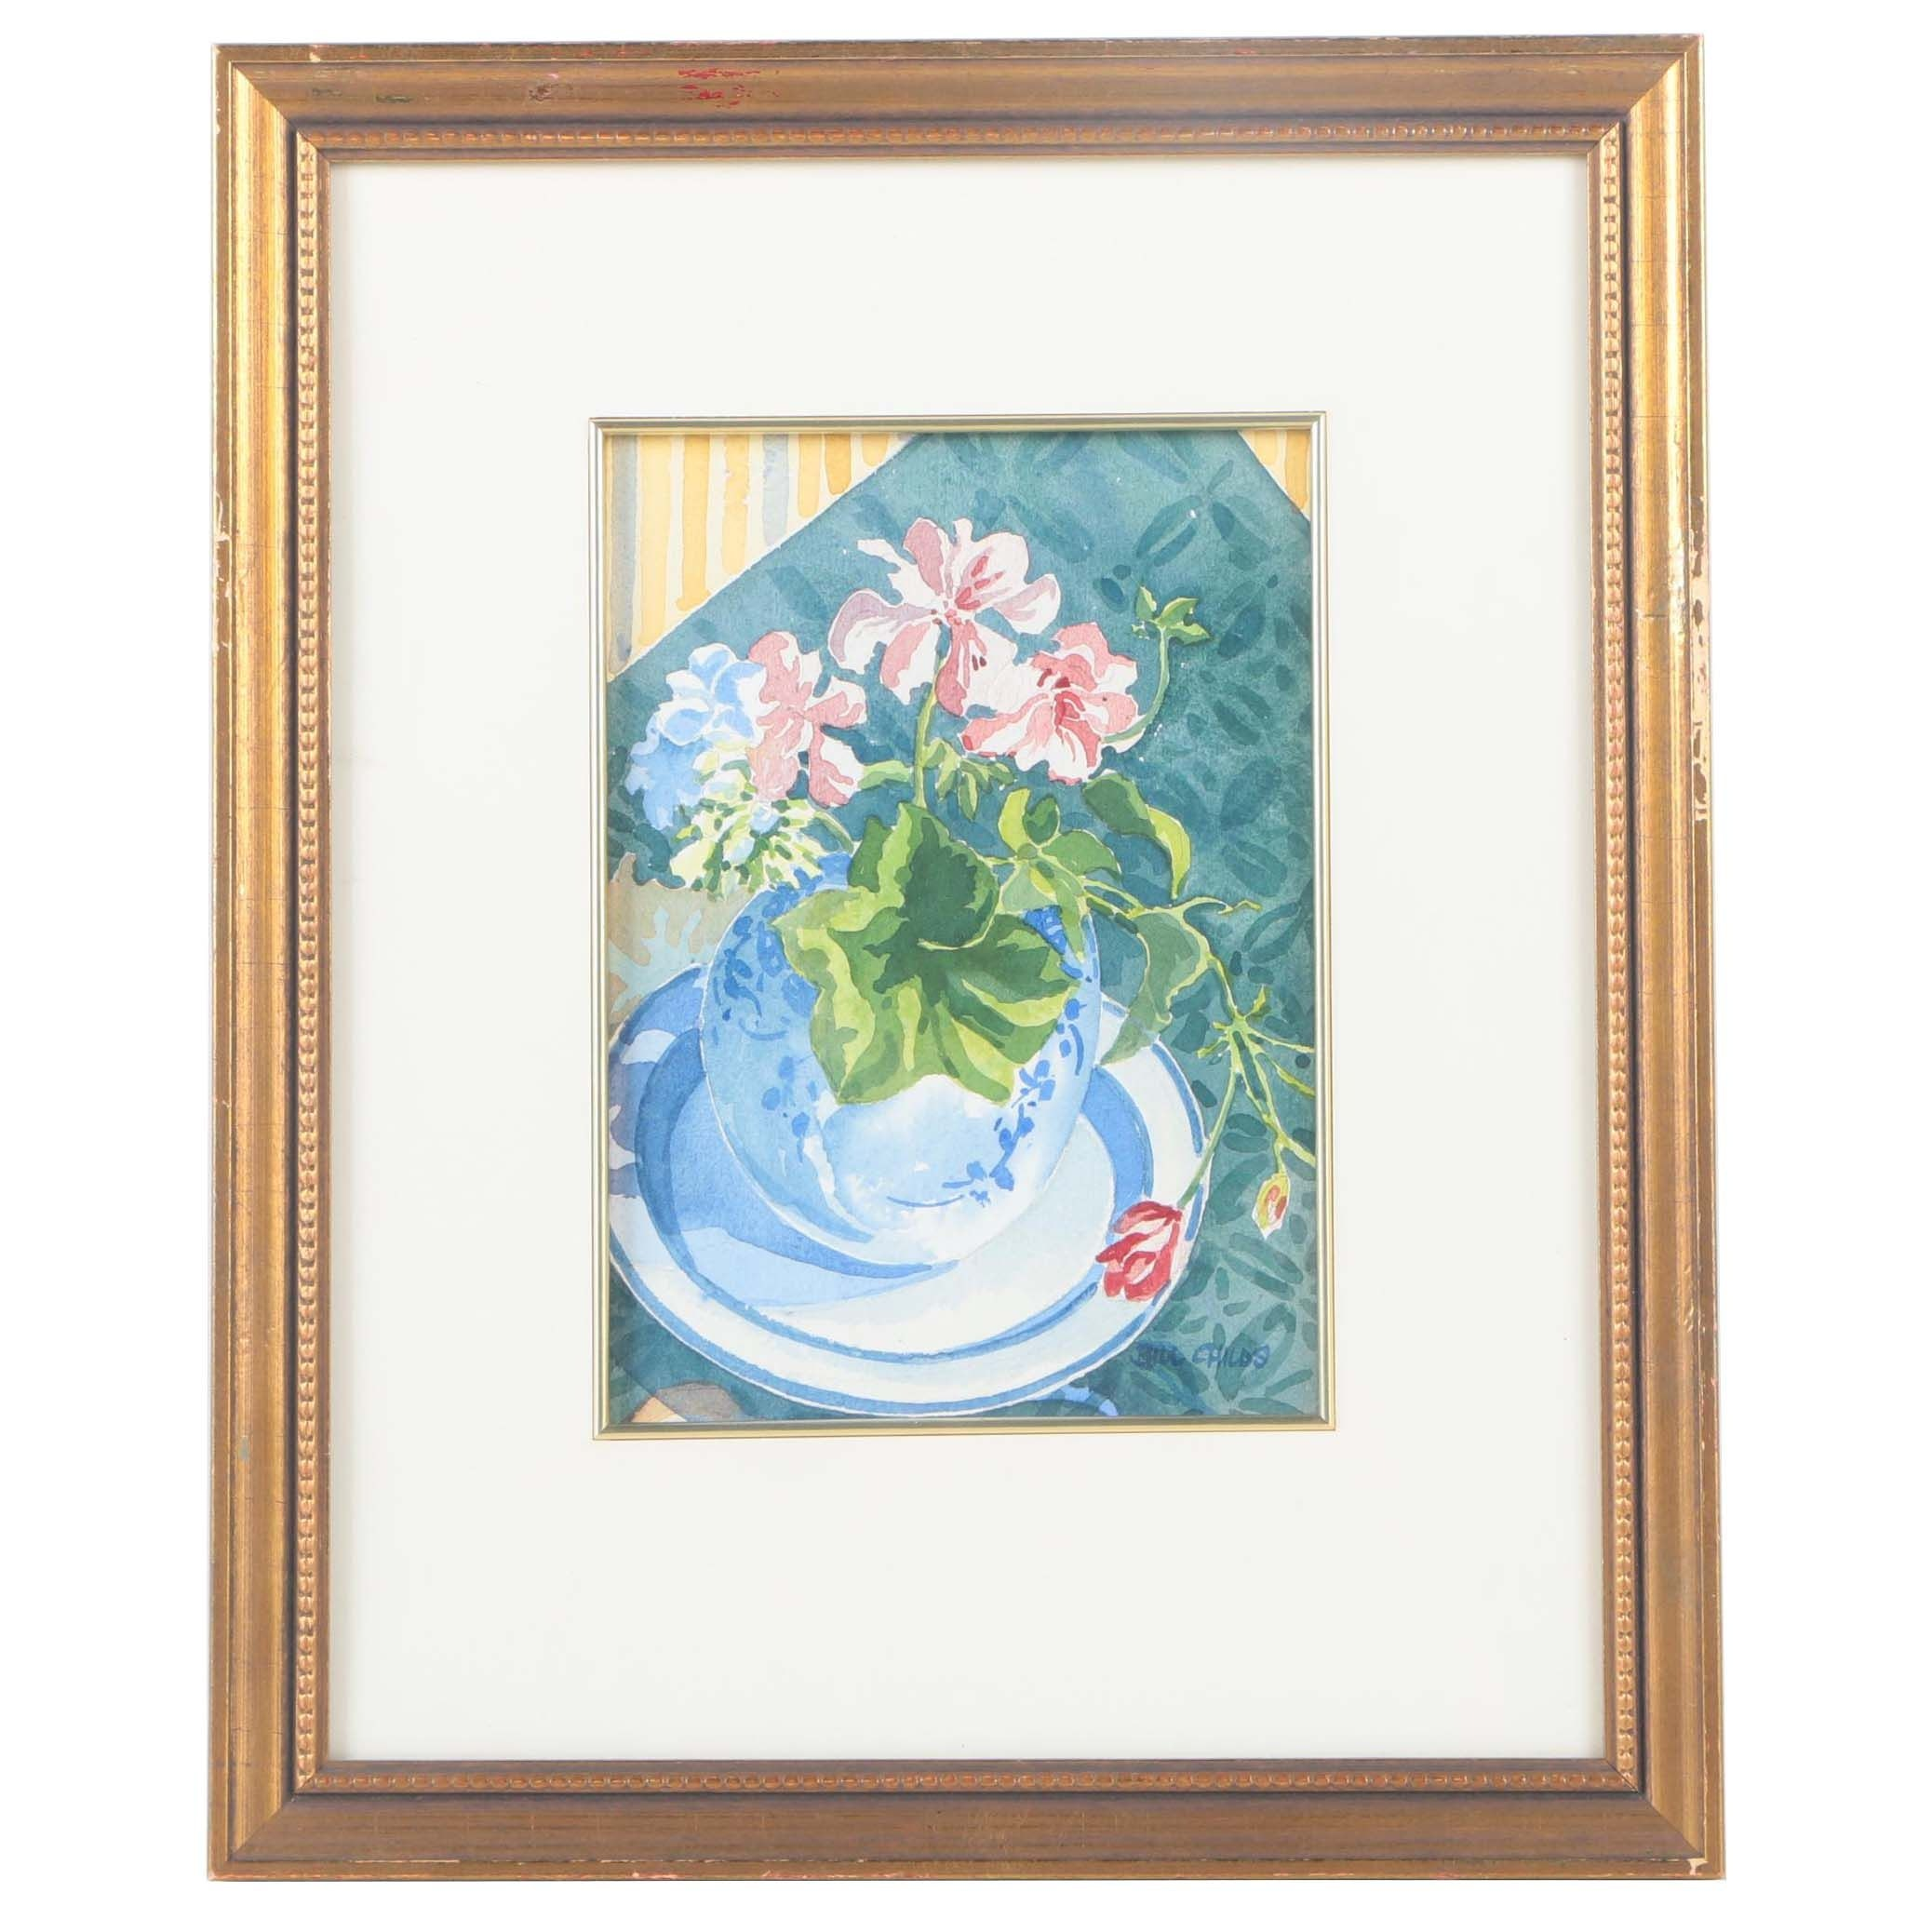 Bill Childs Watercolor Painting on Paper of Floral Still Life